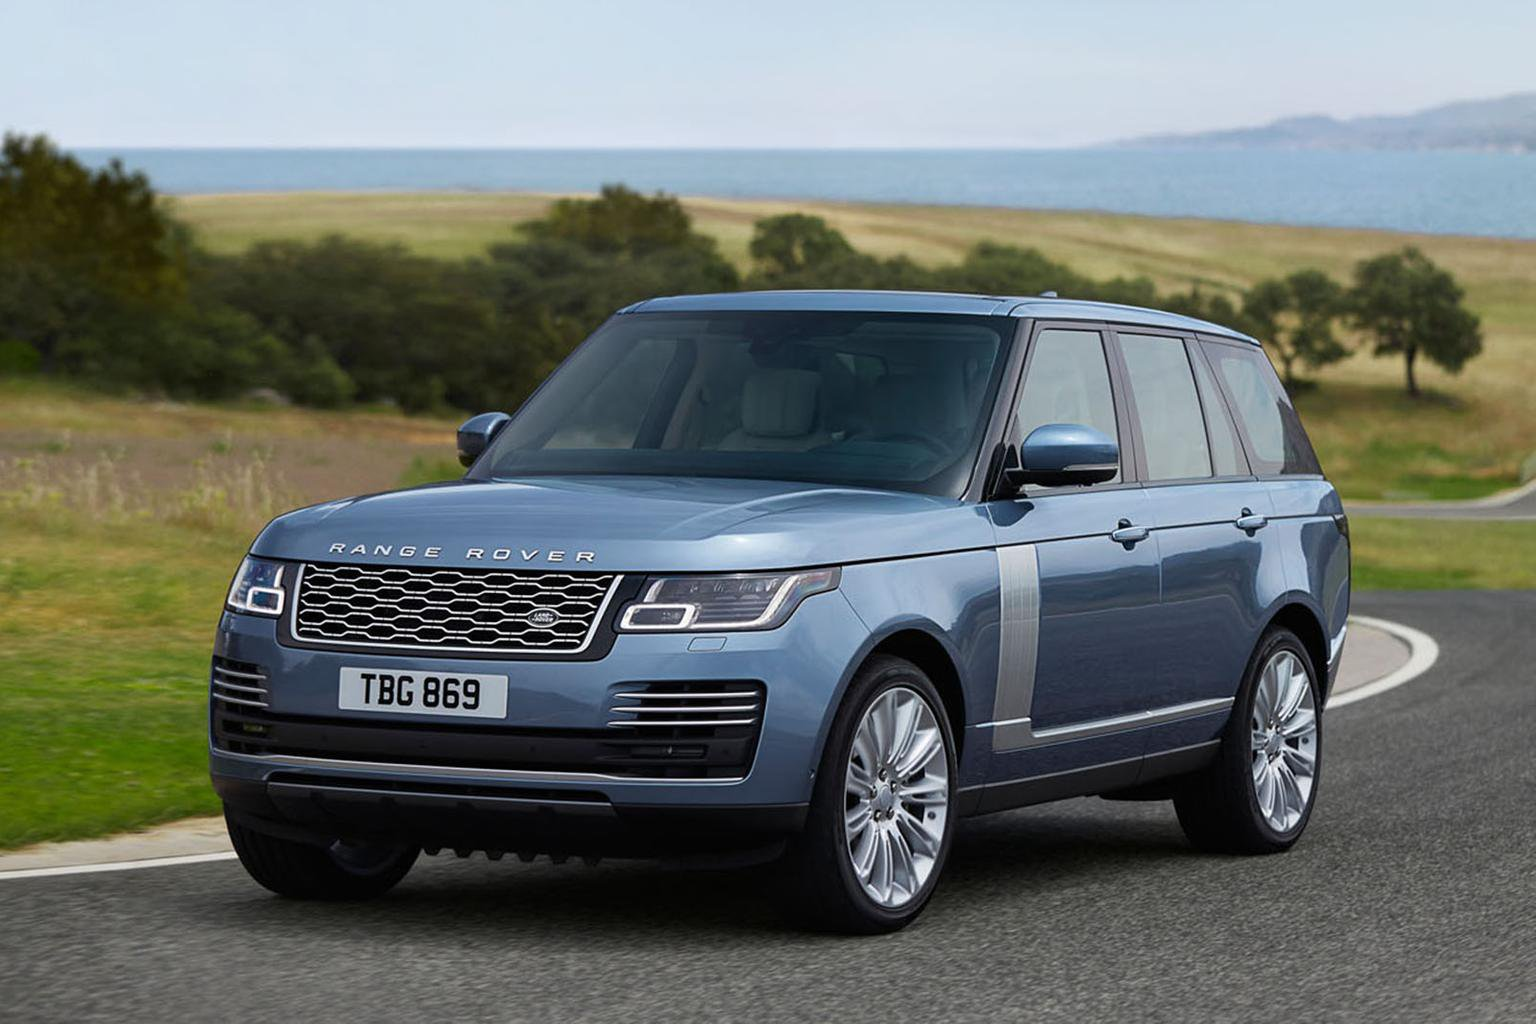 2018 Range Rover Facelift Price Specs And Release Date